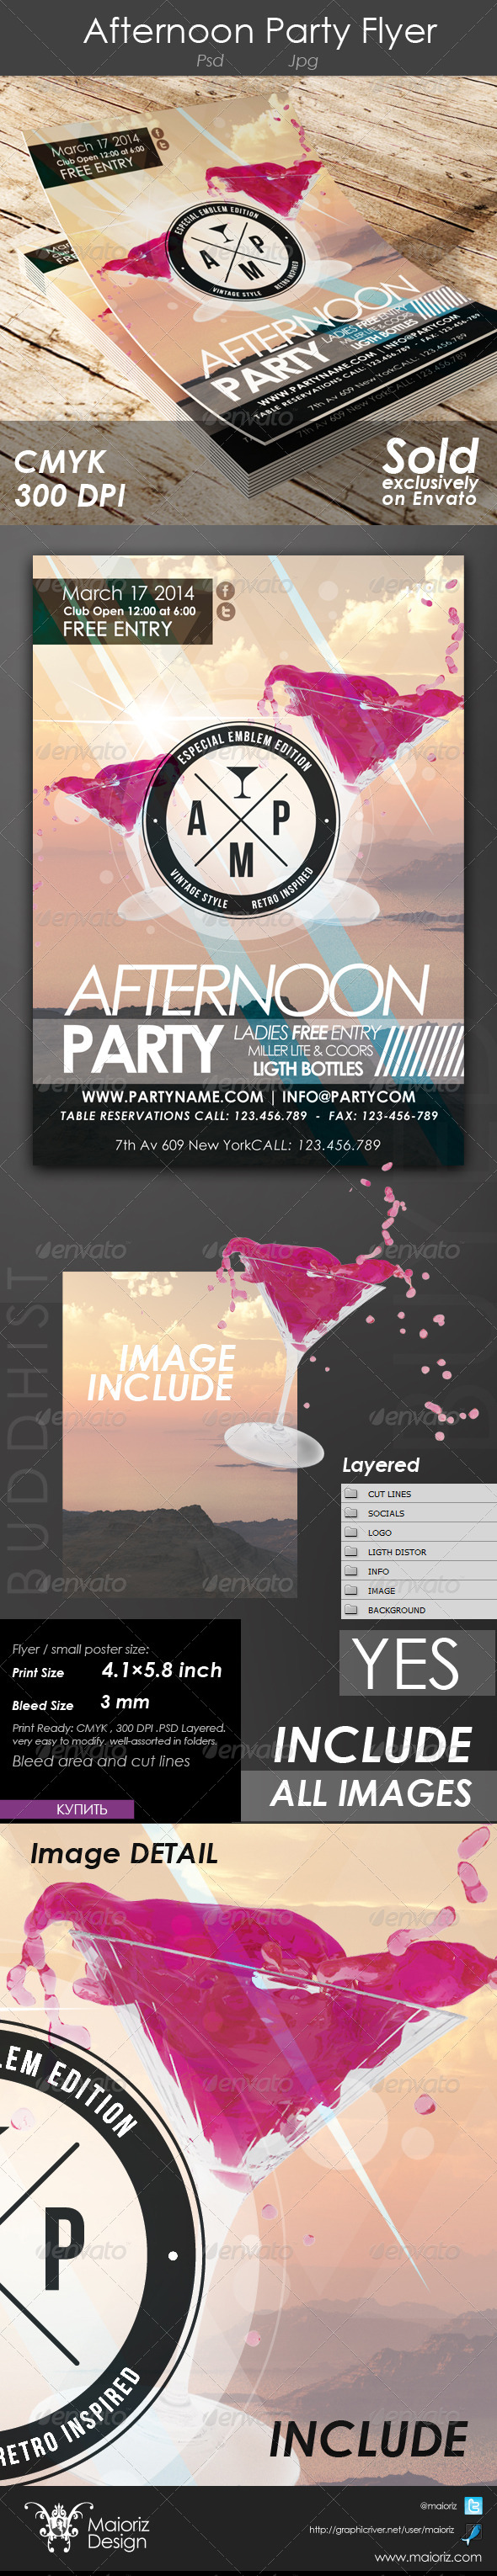 GraphicRiver Afternoon Party Flyer 4603181